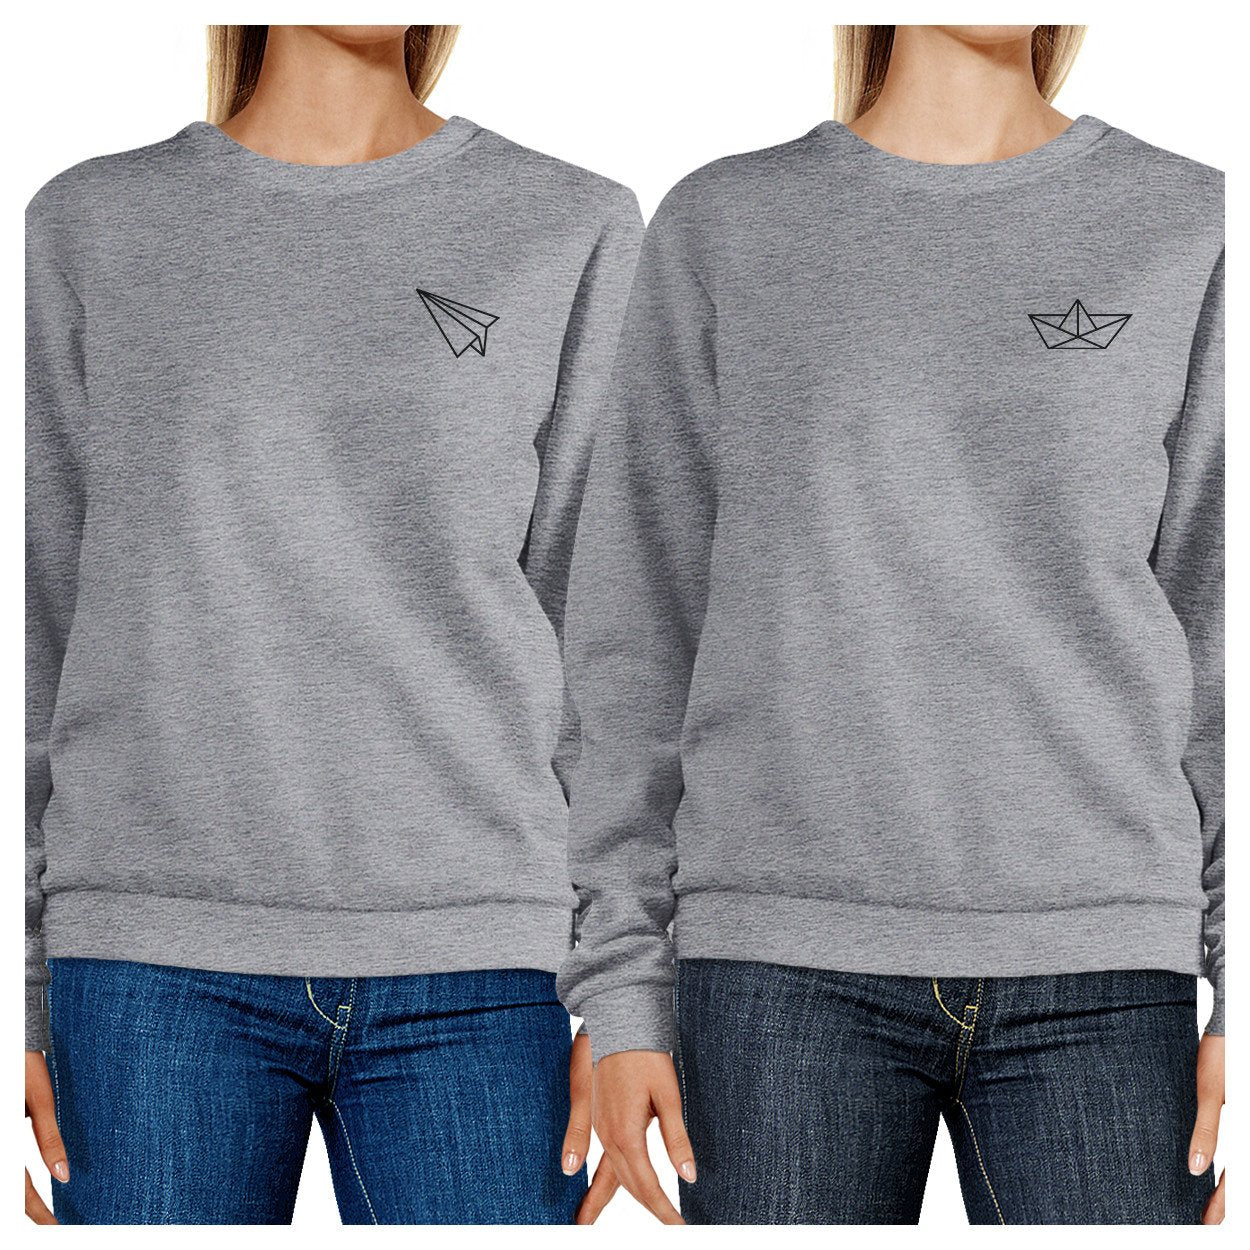 Origami Plane And Boat BFF Matching Grey Sweatshirts